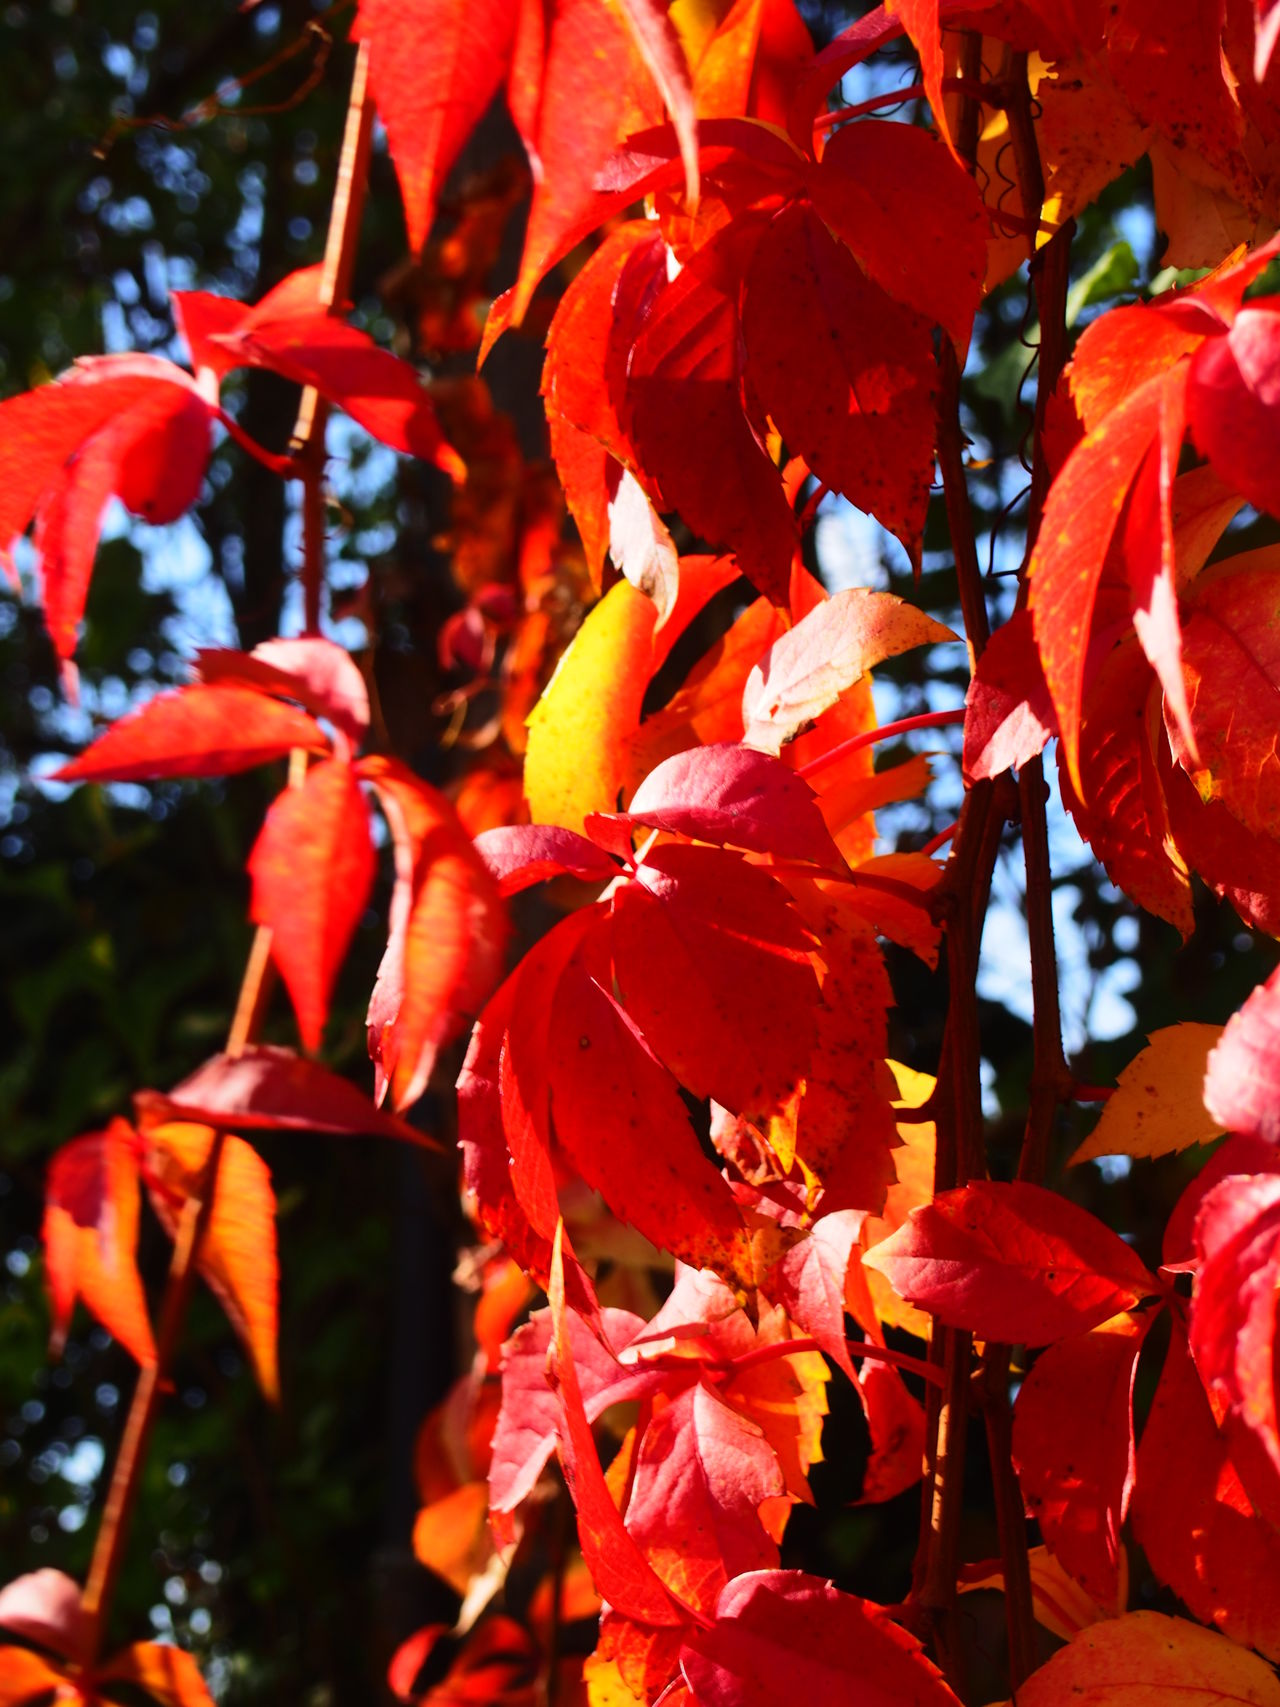 Beauty In Nature Close-up Day Focus On Foreground Fragility Freshness Growth Nature No People Outdoors Red Tree